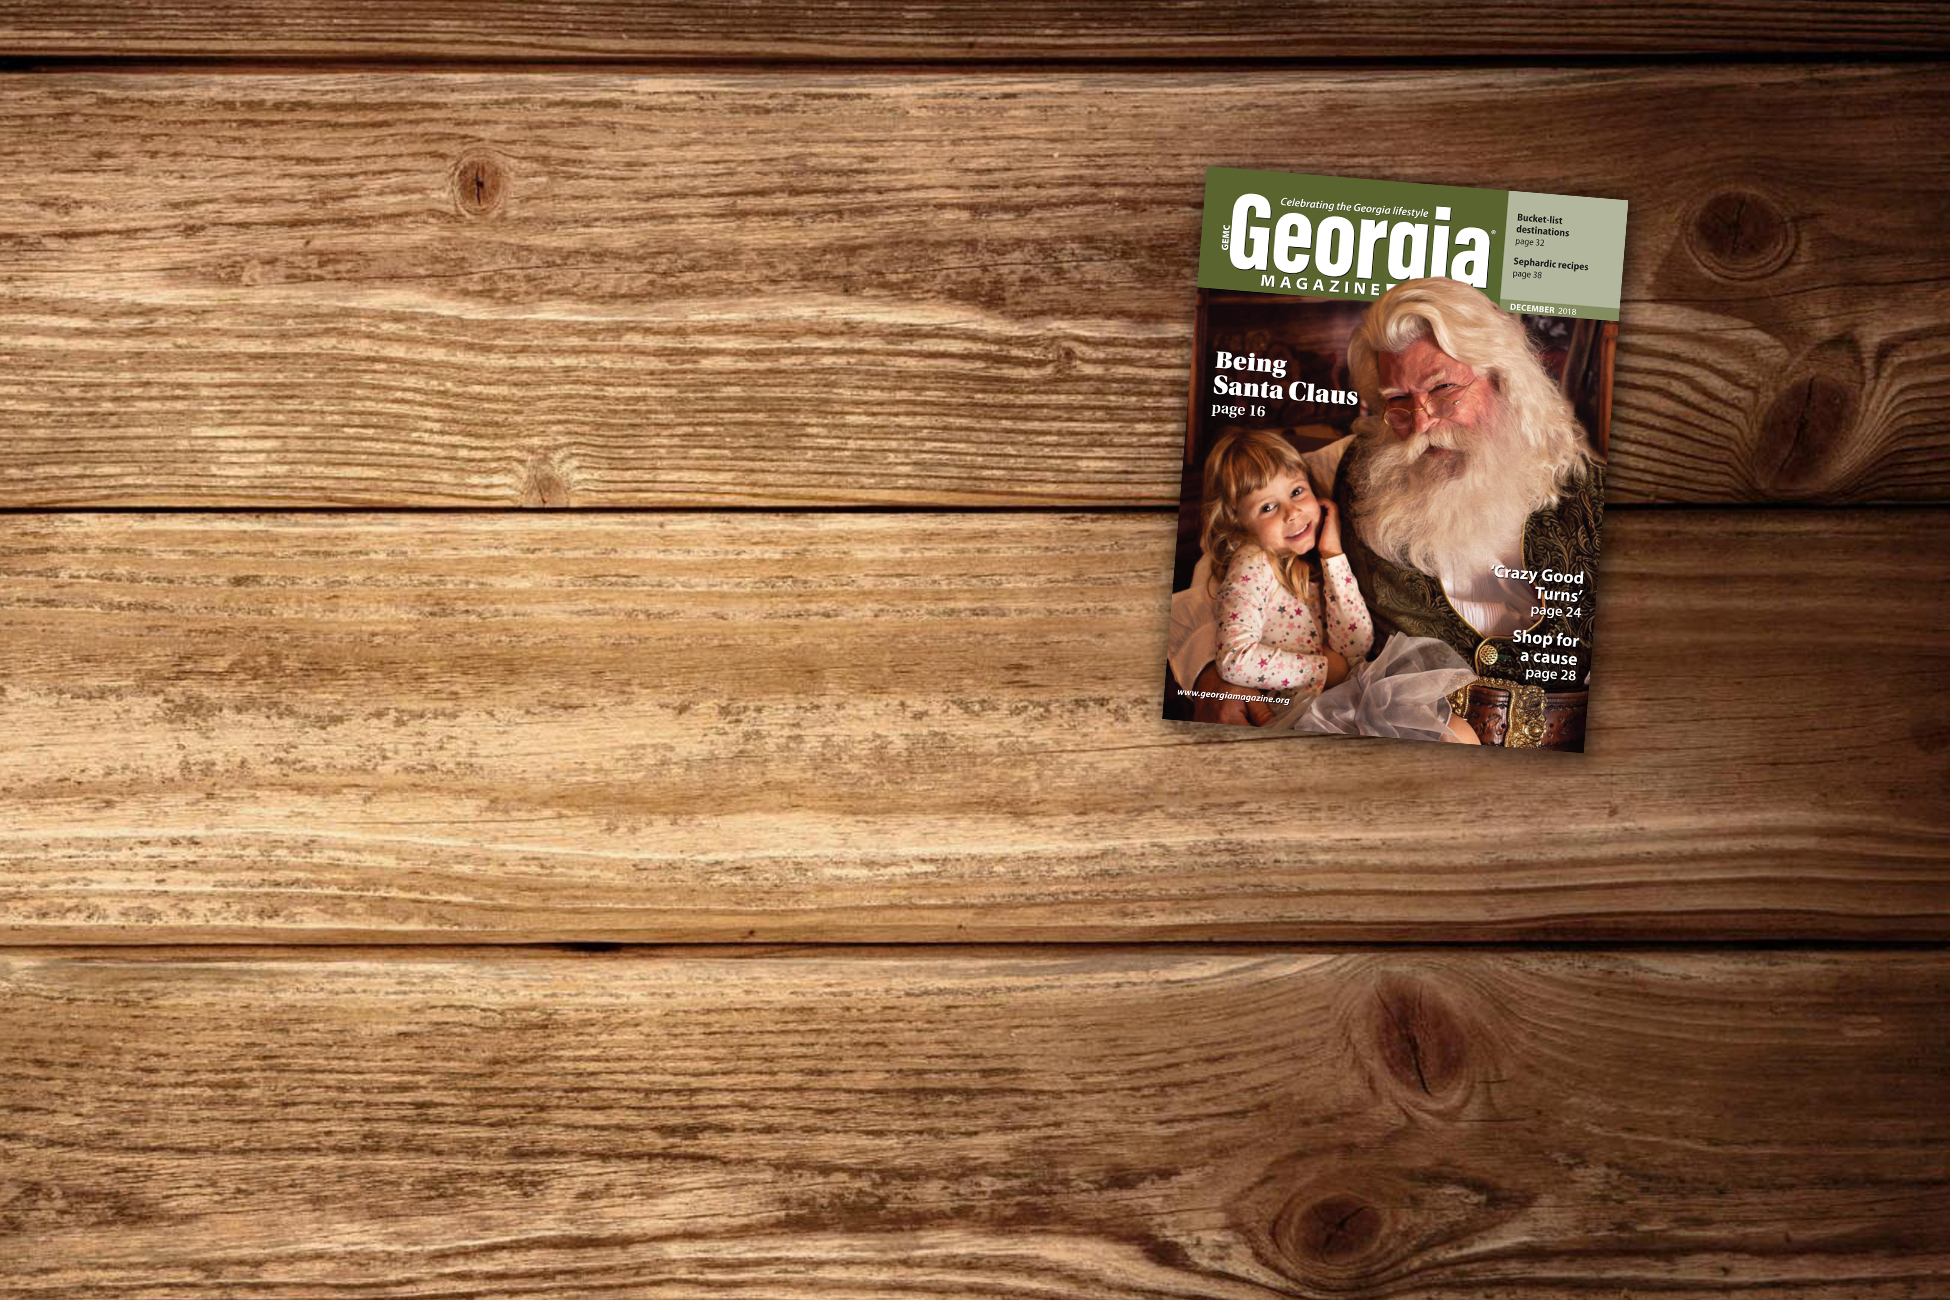 Check out December's Georgia Magazine